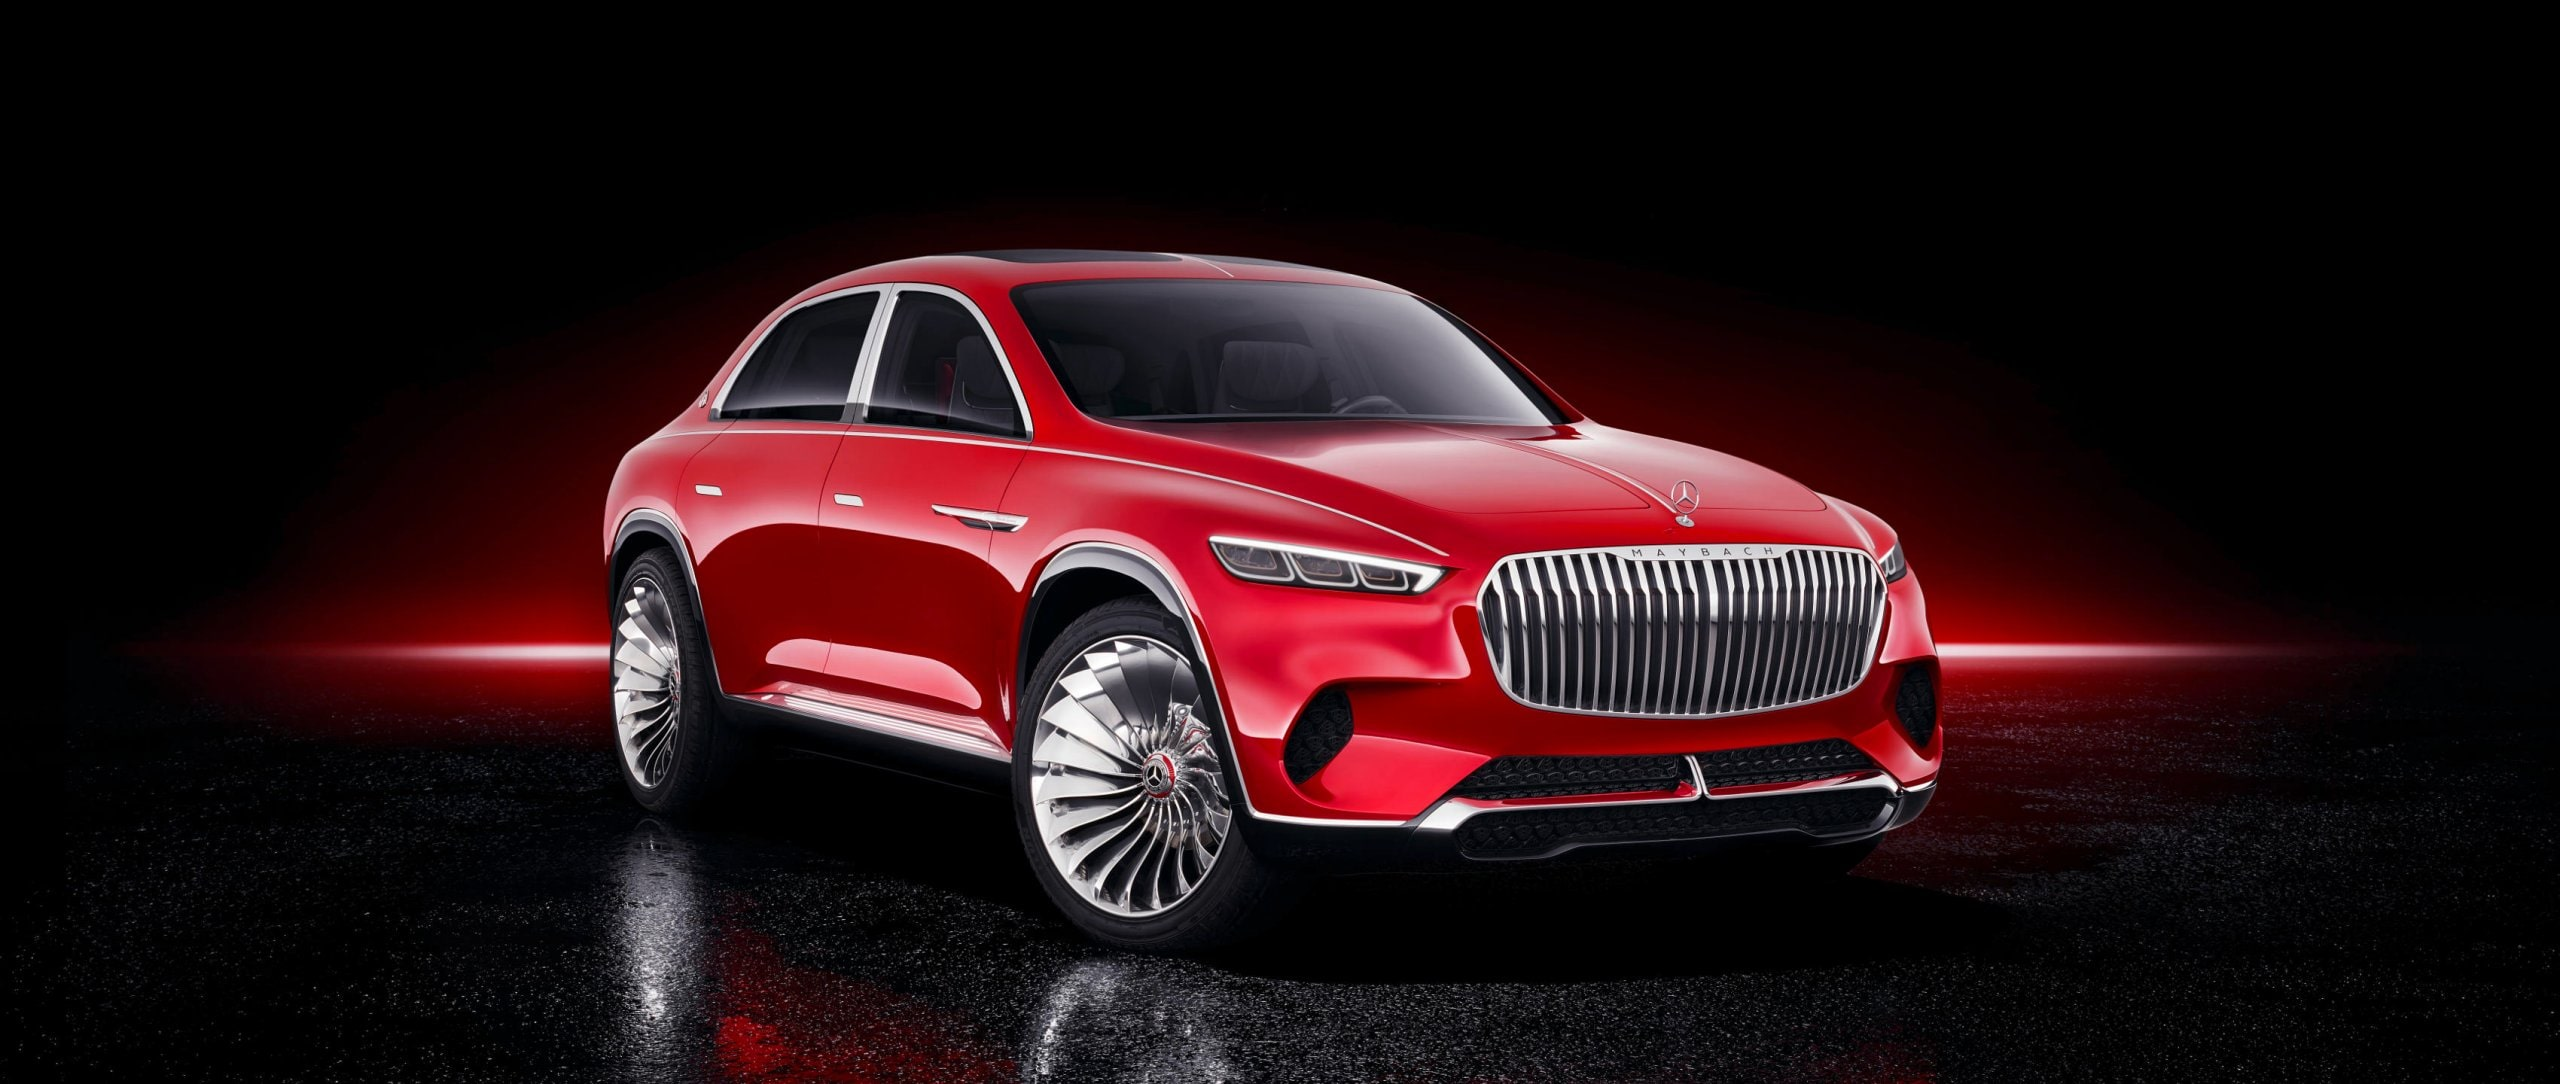 Entwurf des Vision Mercedes-Maybach Ultimate Luxury 2018.